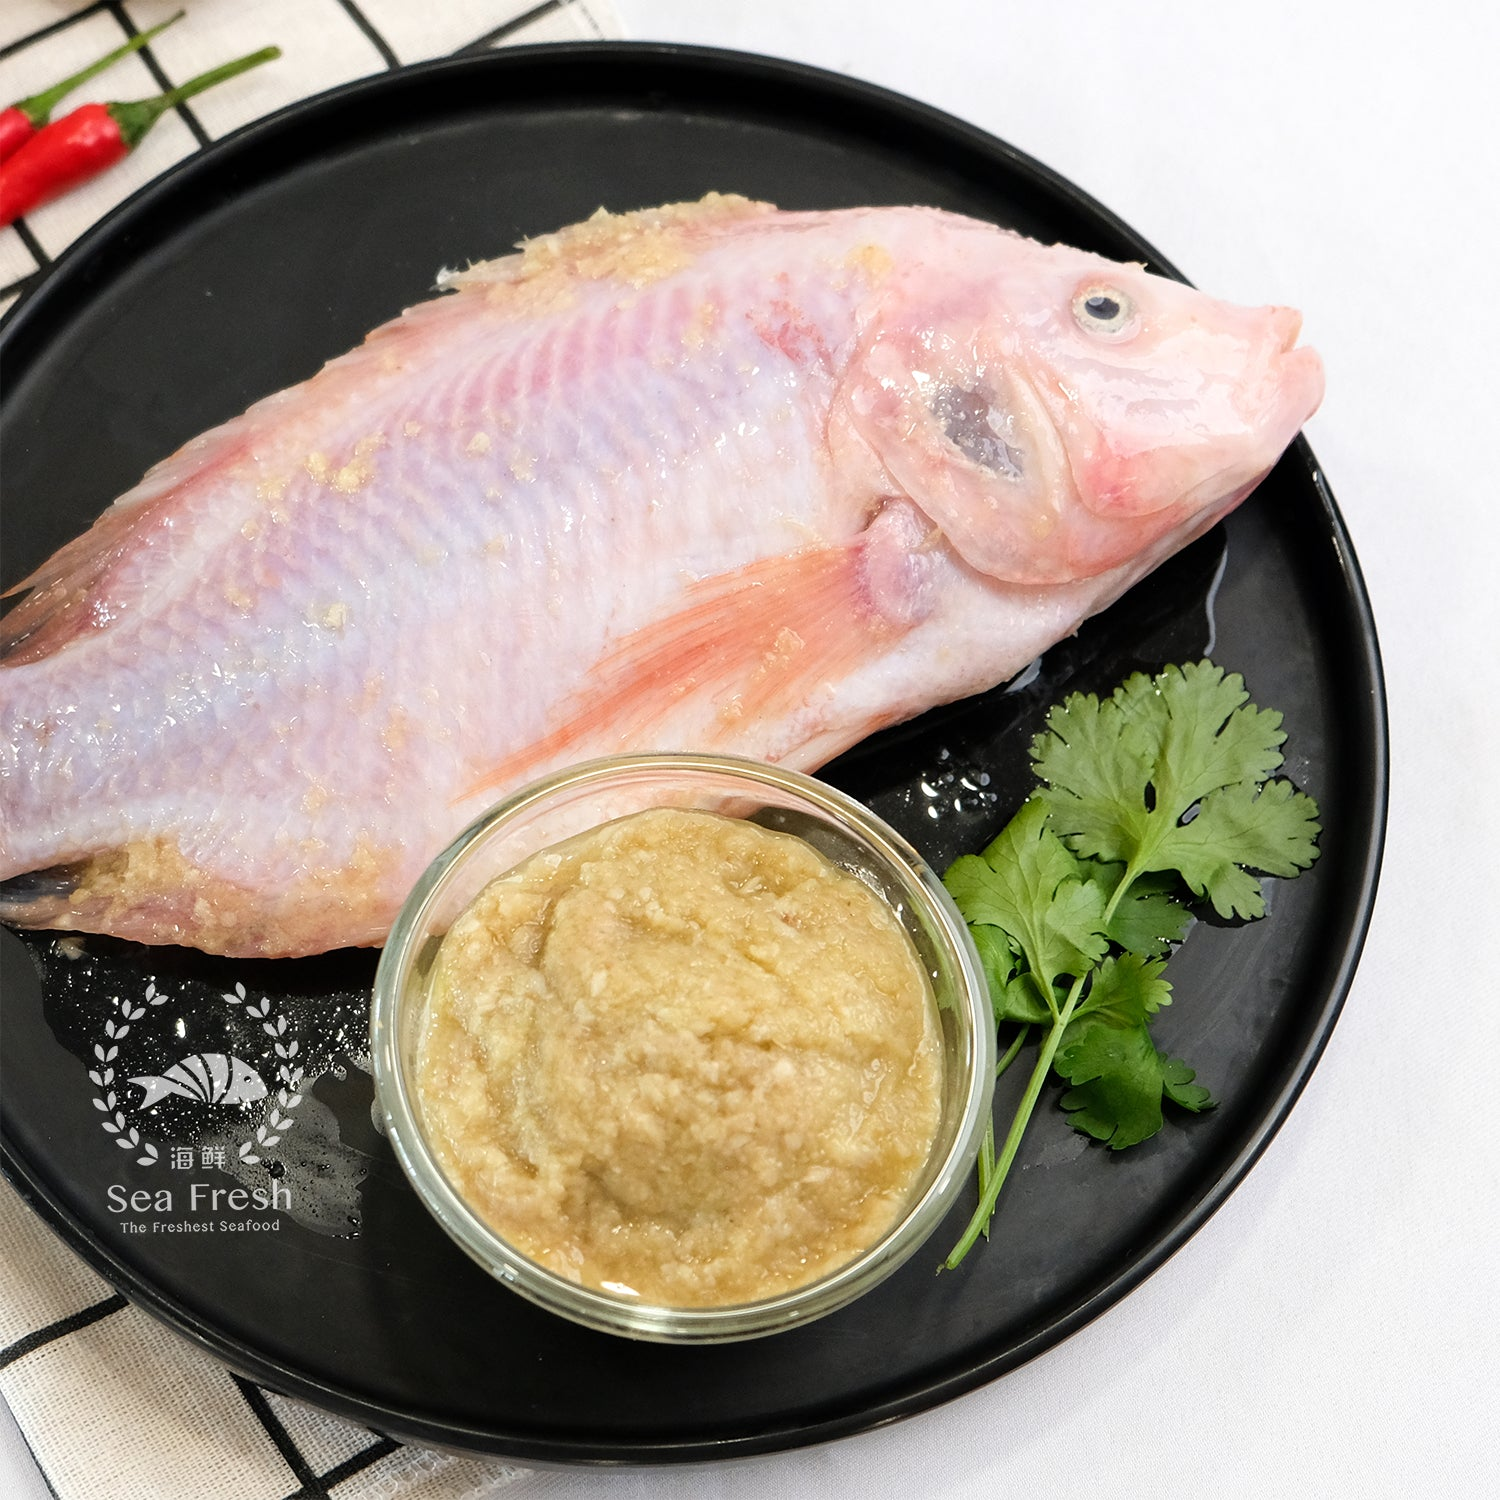 Ginger Garlic Tilapia / 蒜蓉山水非洲鱼